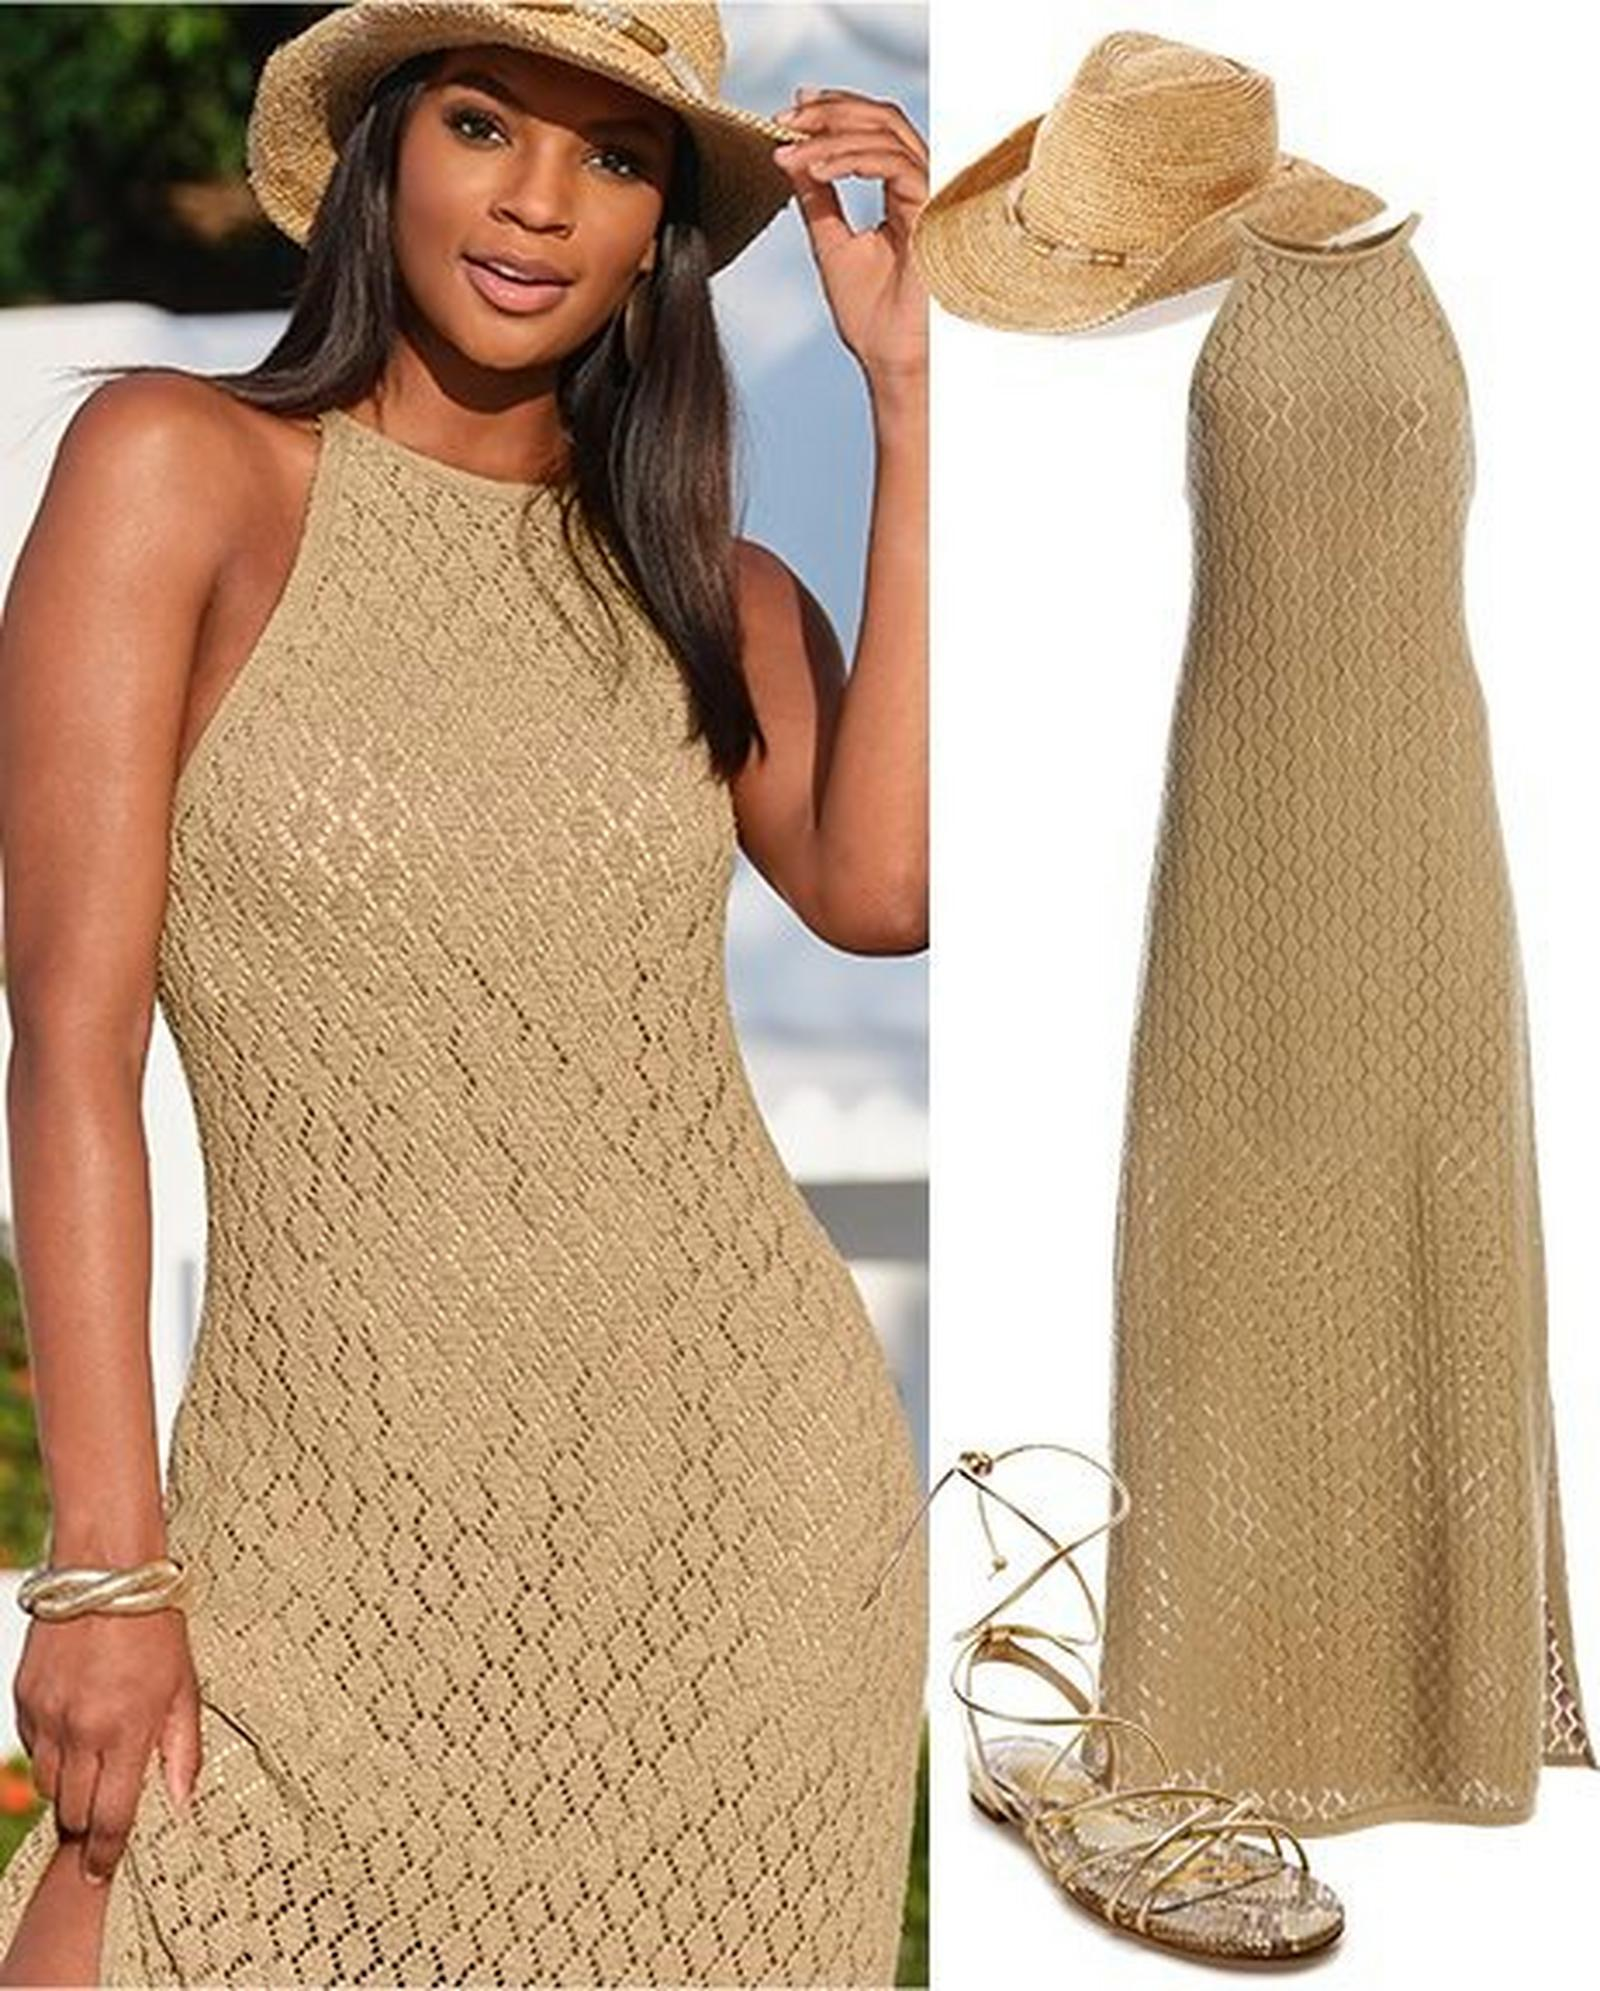 left model wearing a tan high-neck sleeveless knit maxi dress and gold embellished cowboy hat. right panel: tan high-neck sleeveless knit maxi dress, gold embellished cowboy hat, gold lace-up sandals.